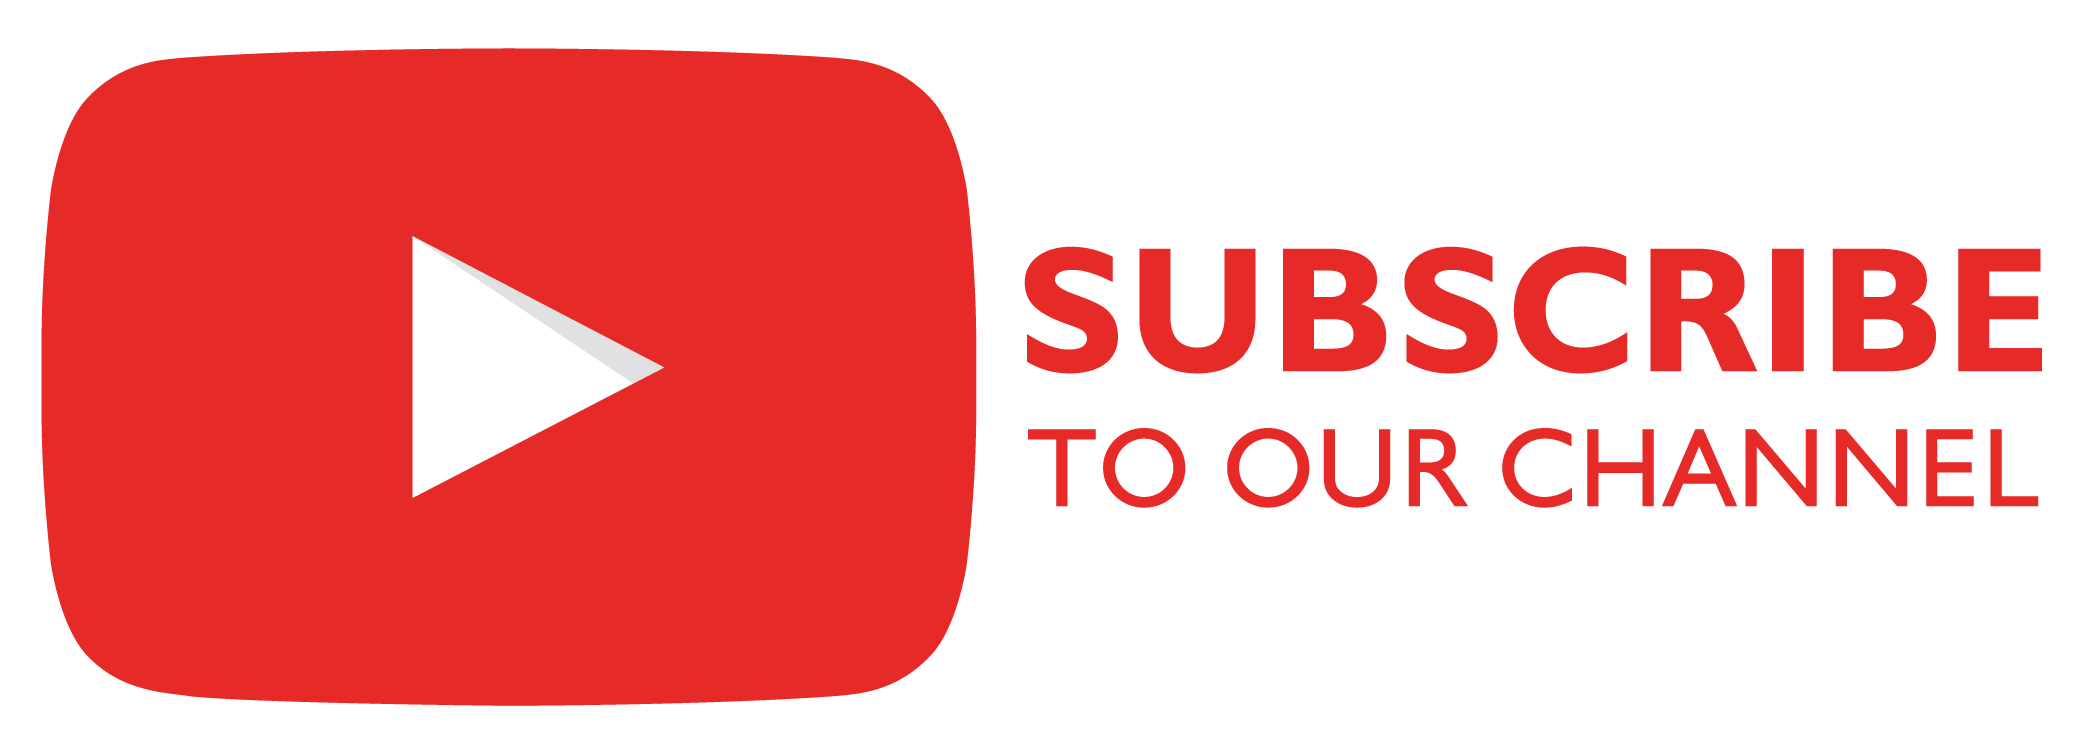 1516921061Subscribe-To-Our-Channel-Youtube